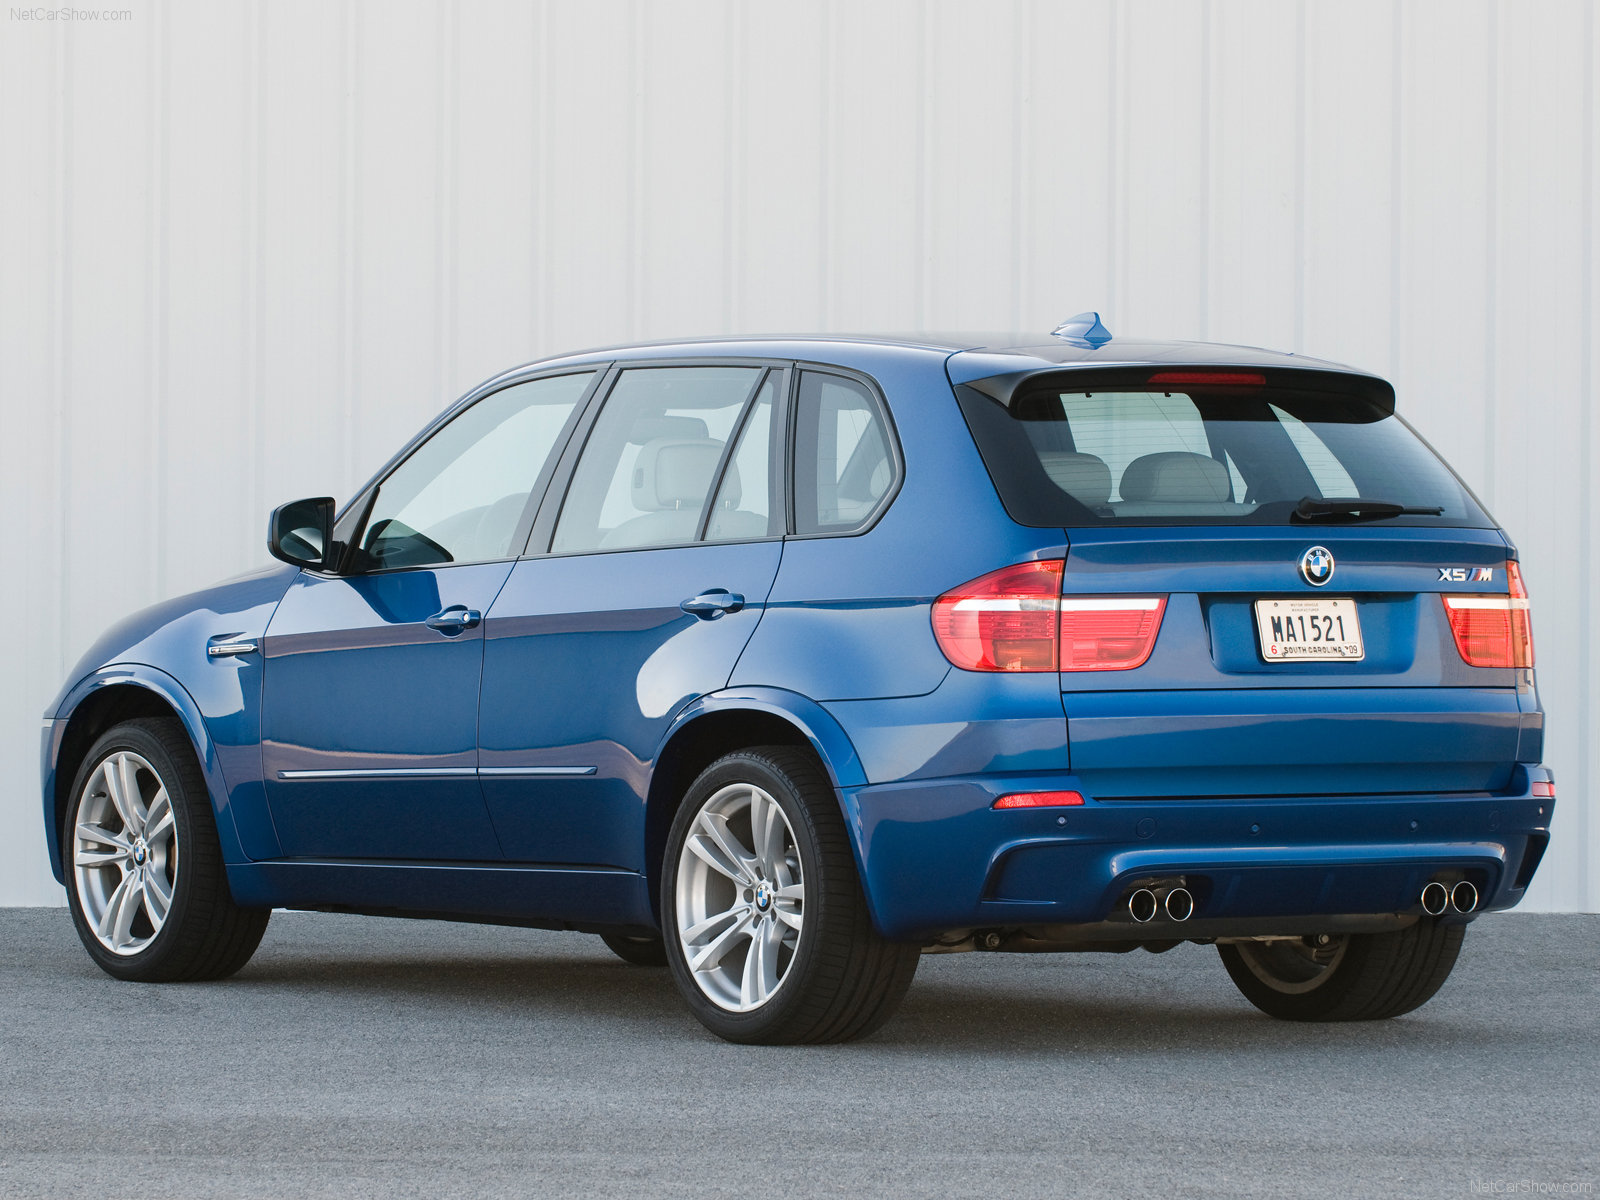 Index of /cars/makes/b/bmw/x5